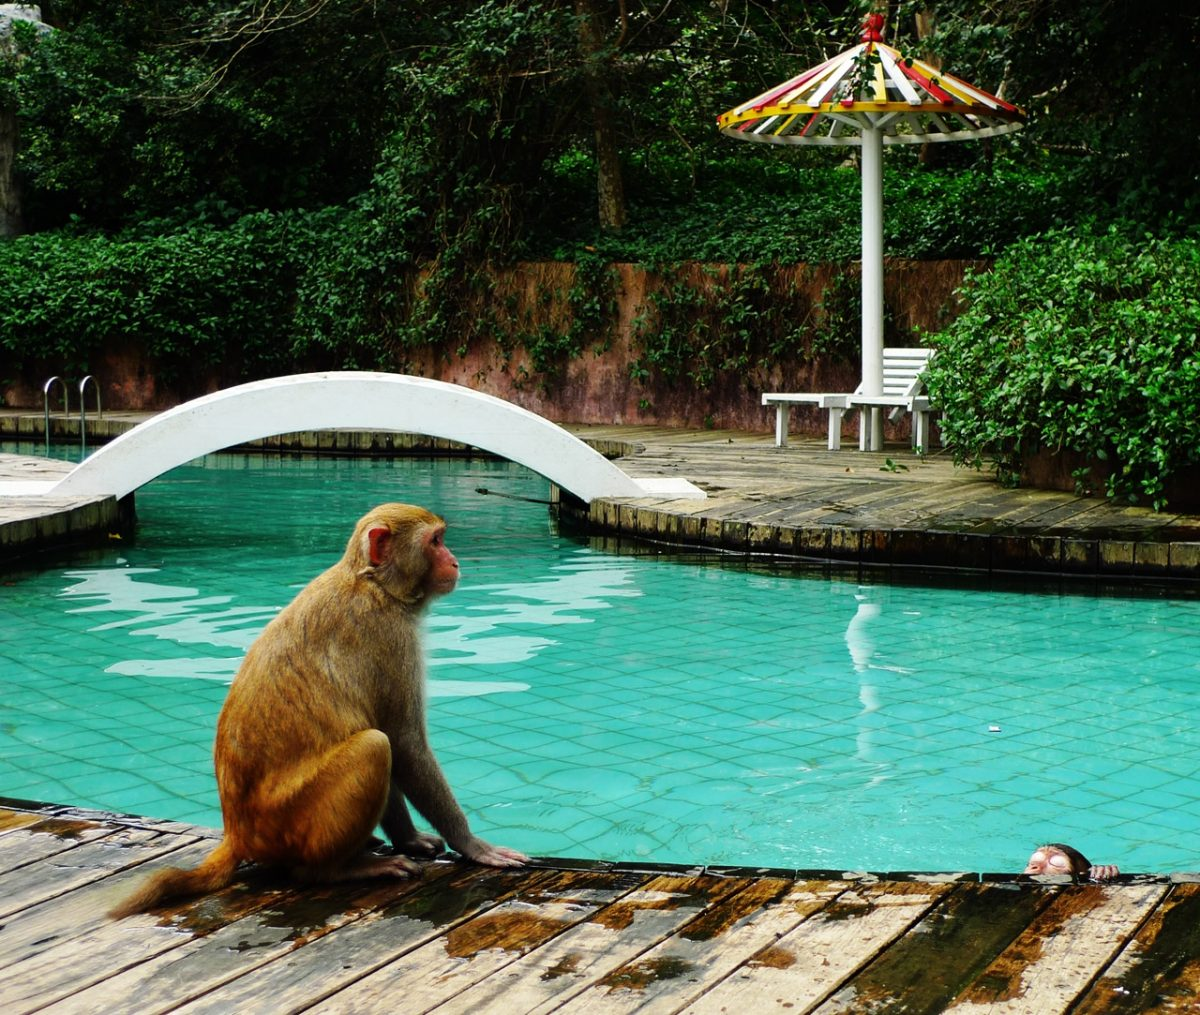 This state-protected nature reserve is located on the south coast of Hainan, near Sanya. It is home to more than 2500 macaque monkeys who are raised and trained here since 1965.